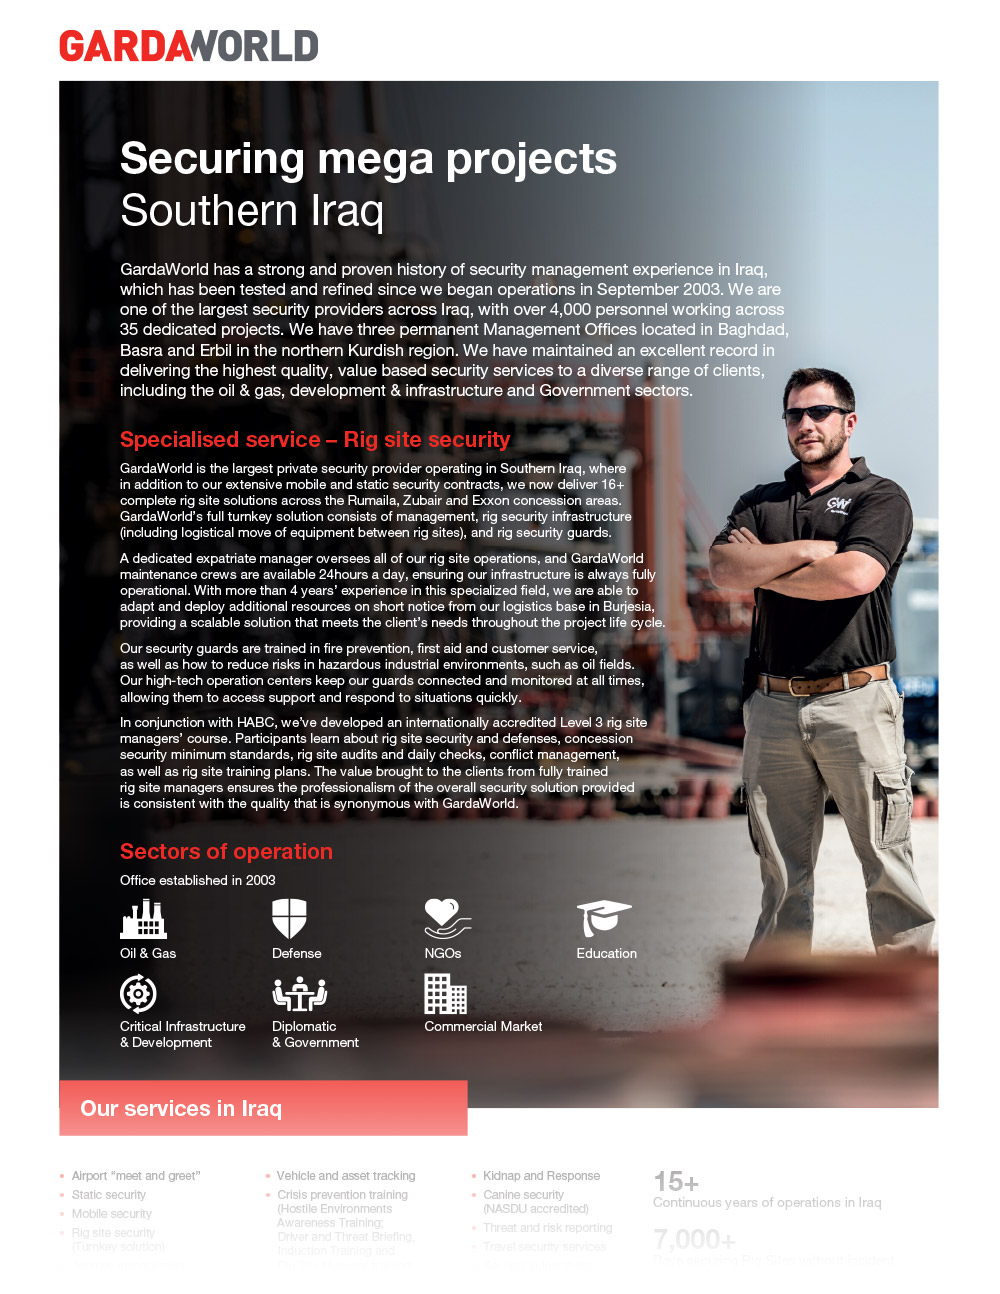 Securing mega projects in Southern Iraq